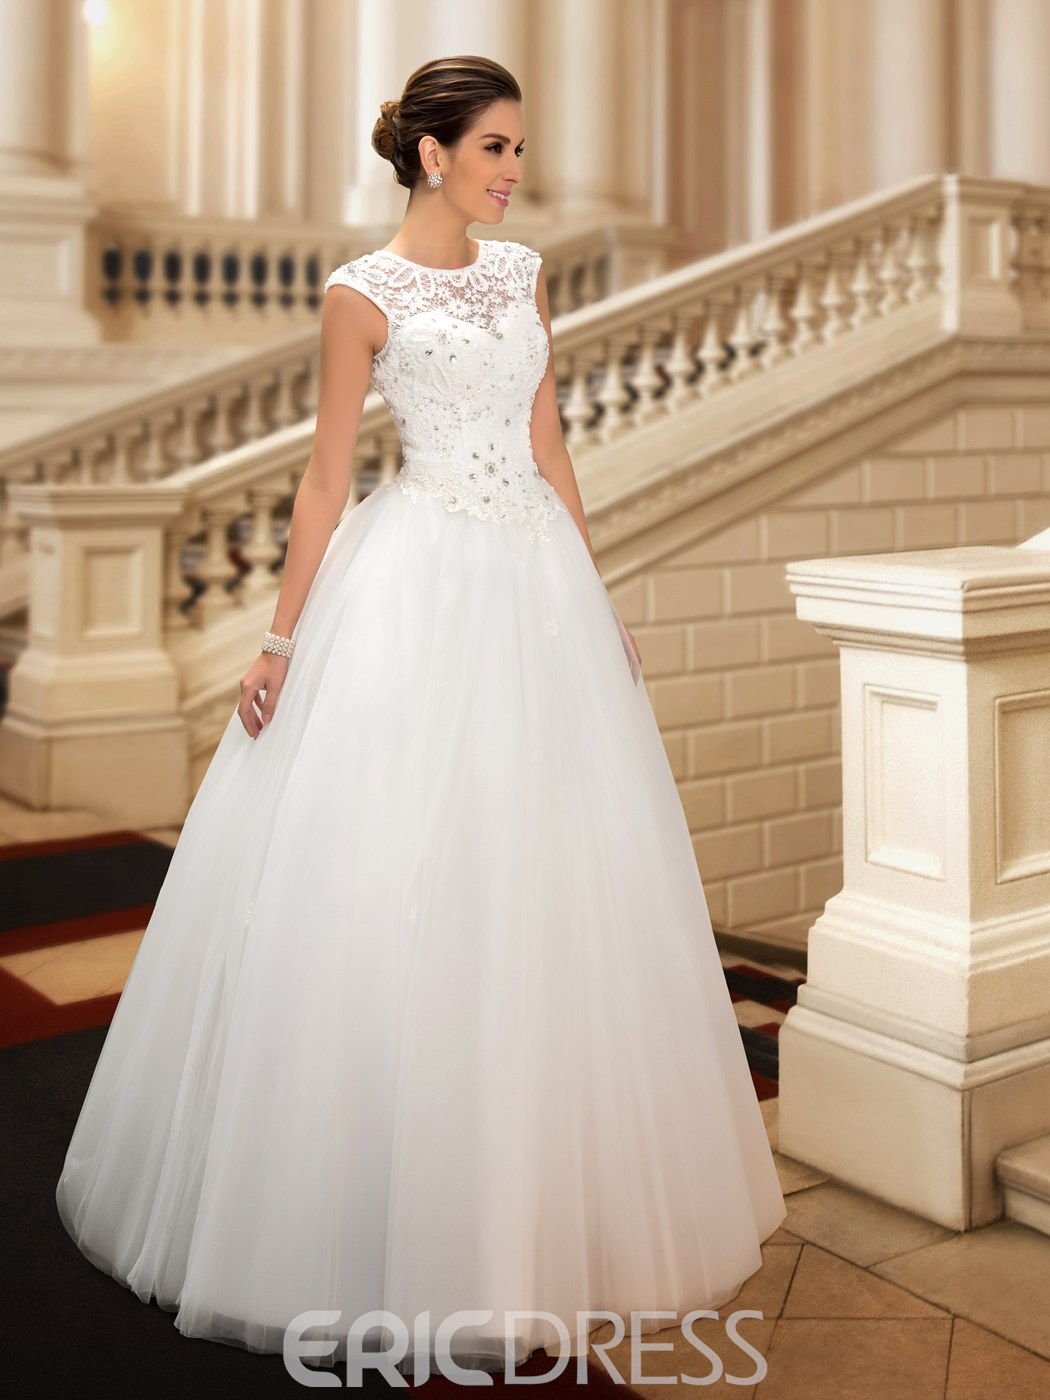 Classy Beaded Lace Jewel Neck Floor Length Princess Wedding Dress